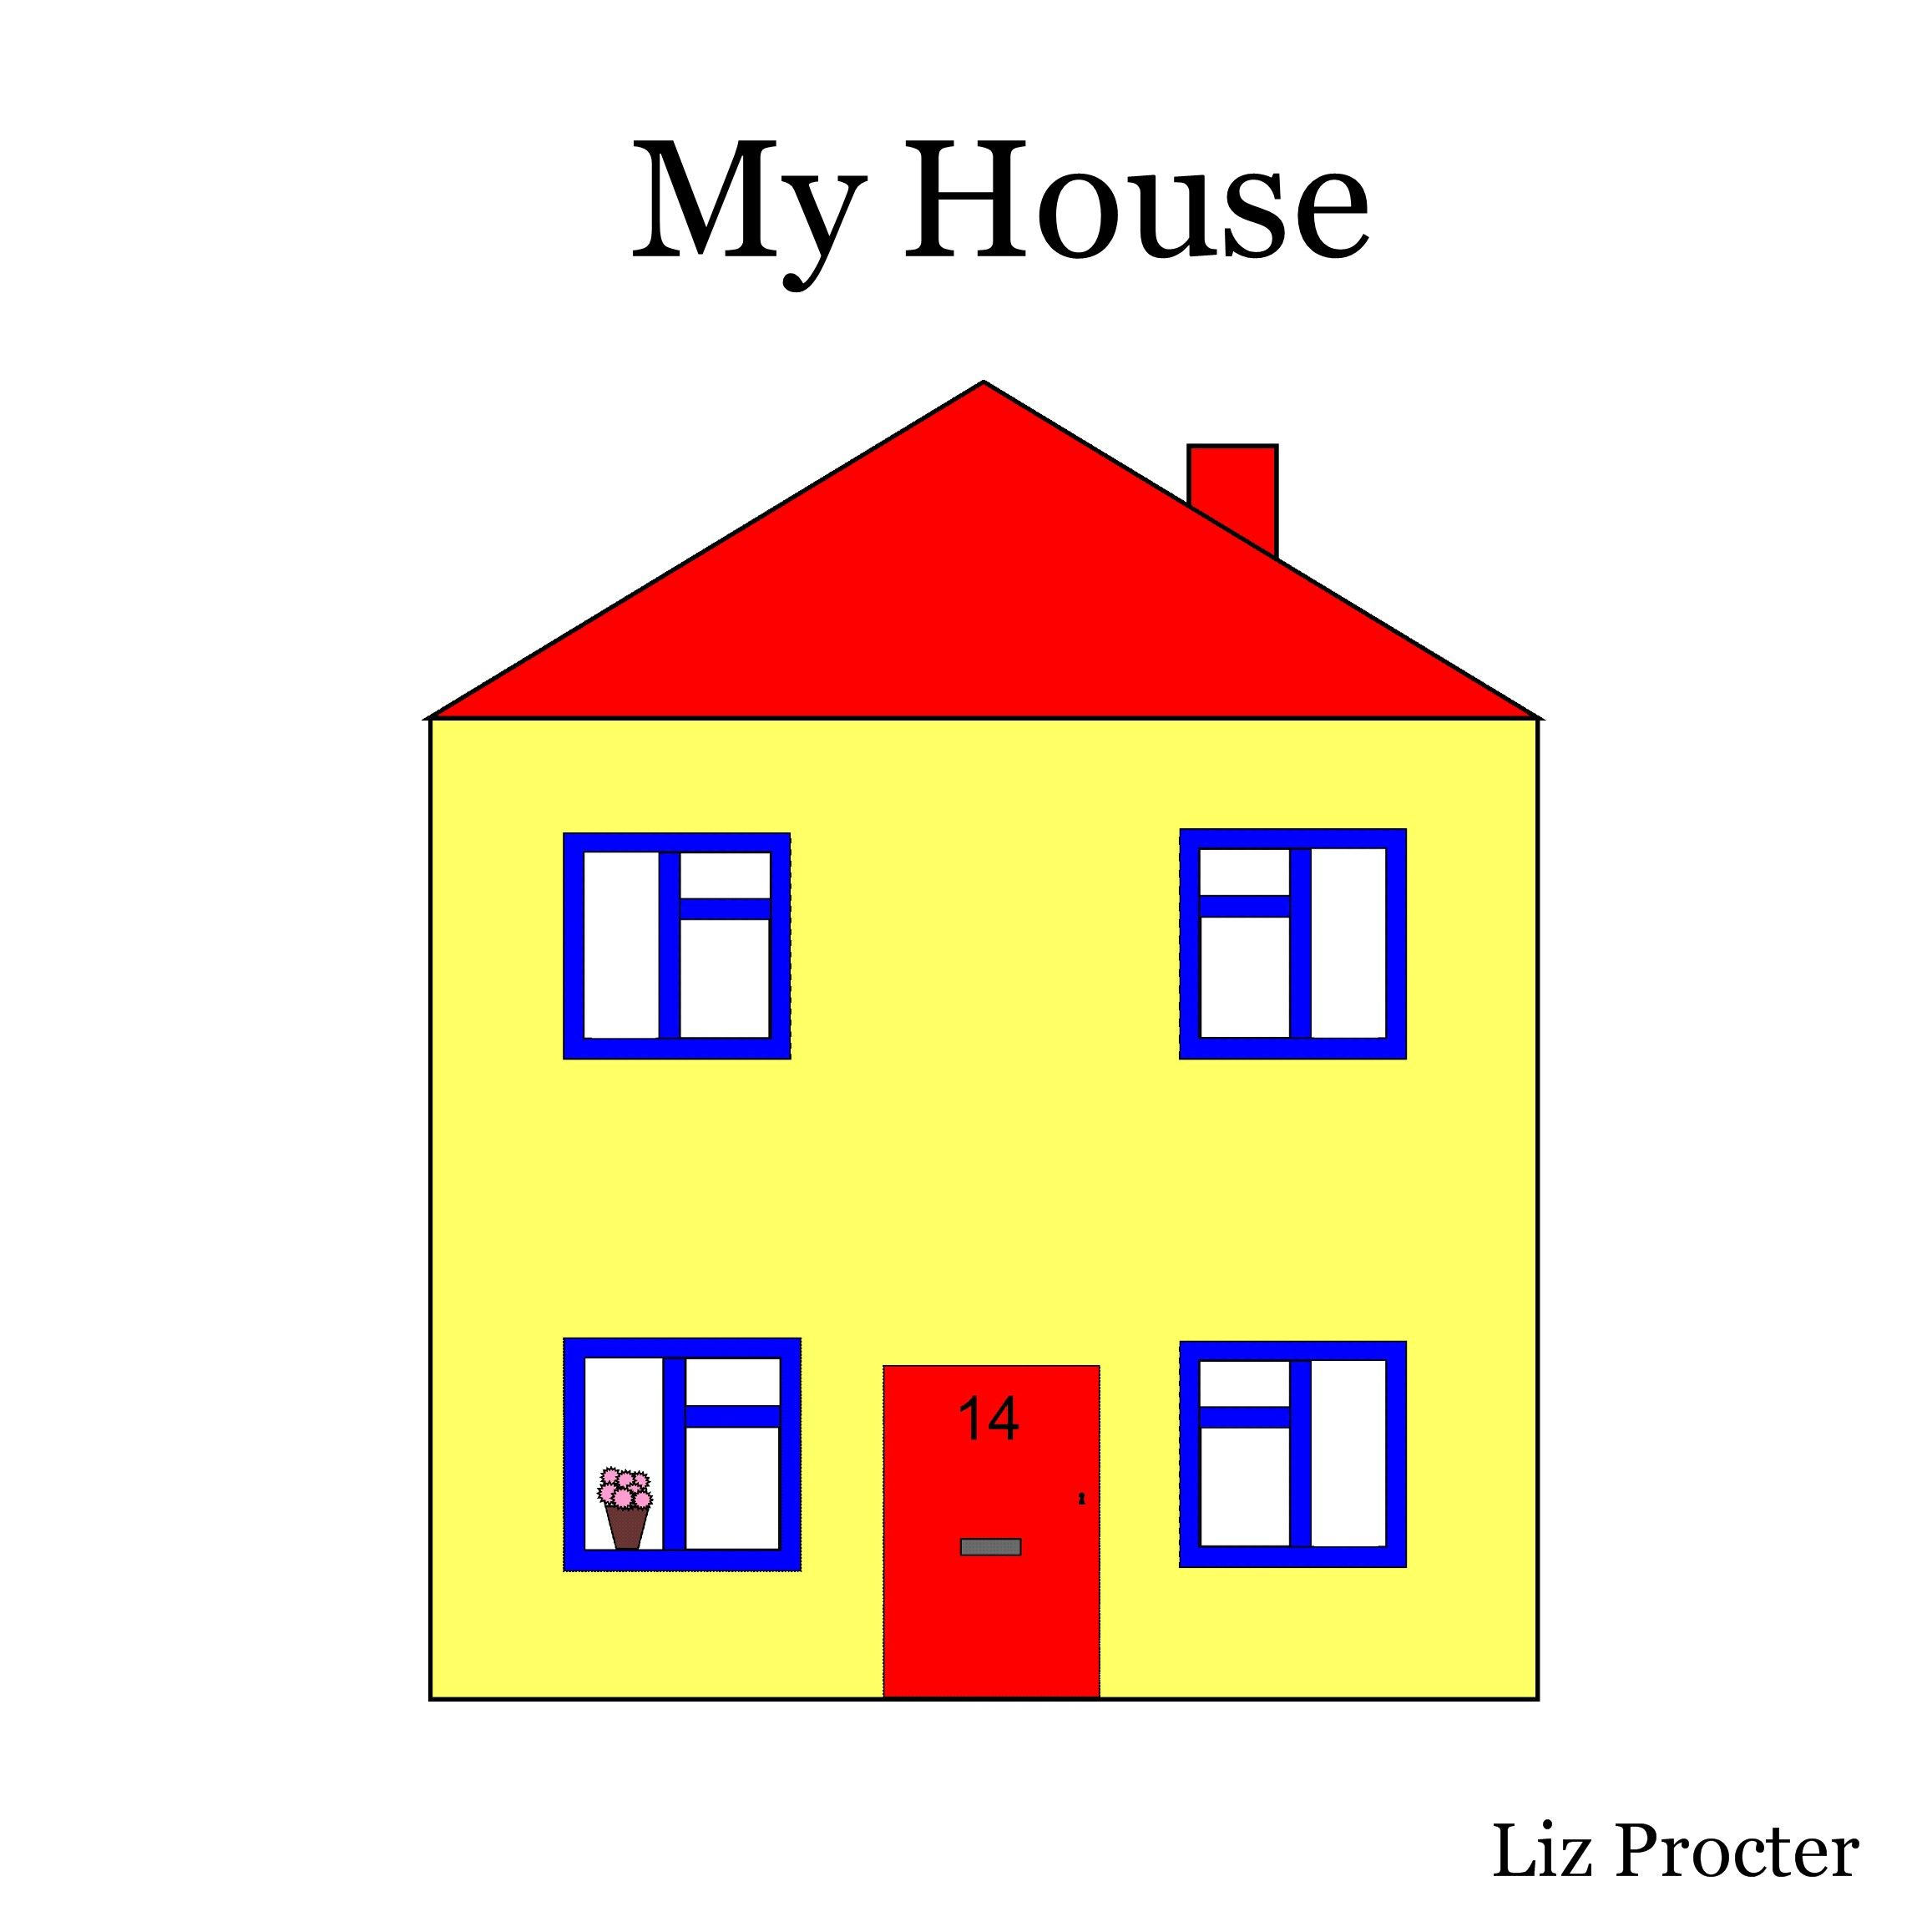 Website For Houses For Rent: Houses For Rent Section 8 Housing